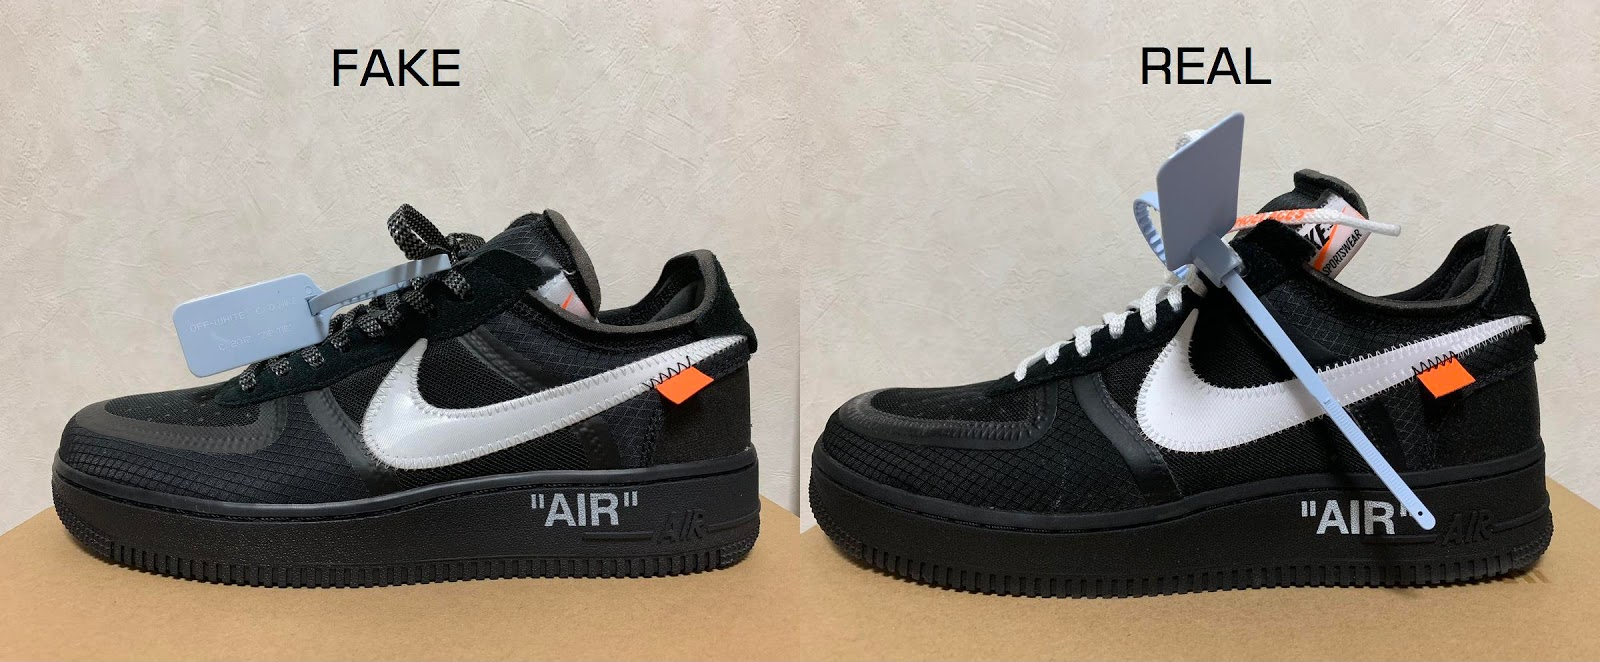 nike air force 1 low off white fake vs real ring knows ring